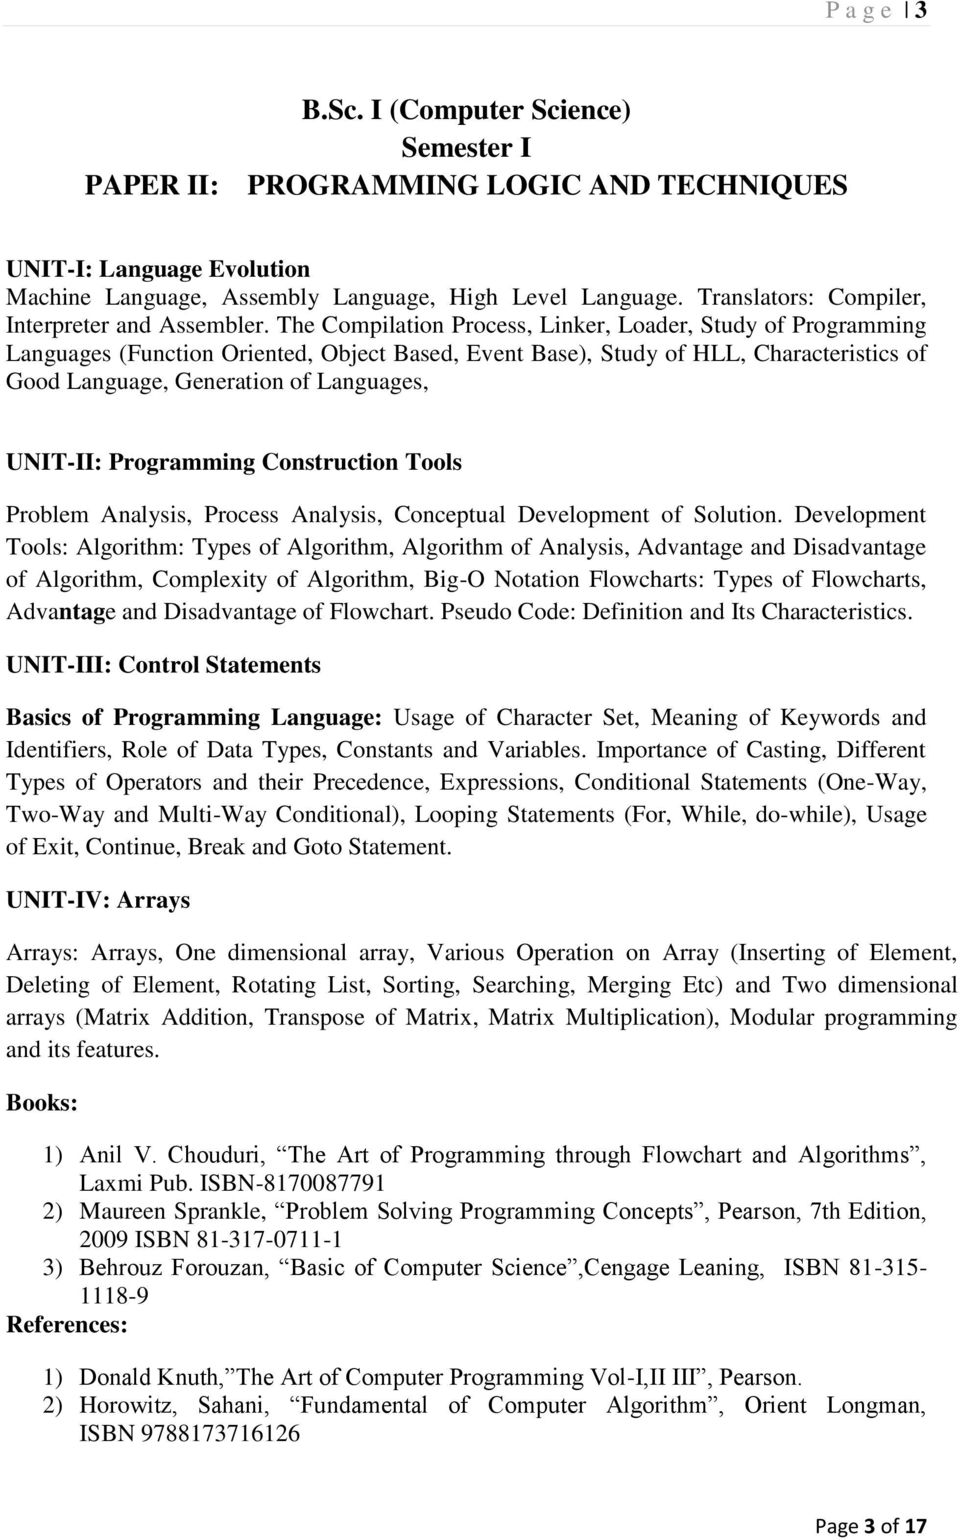 Syllabus of  Bachelor of Science  (Computer Science